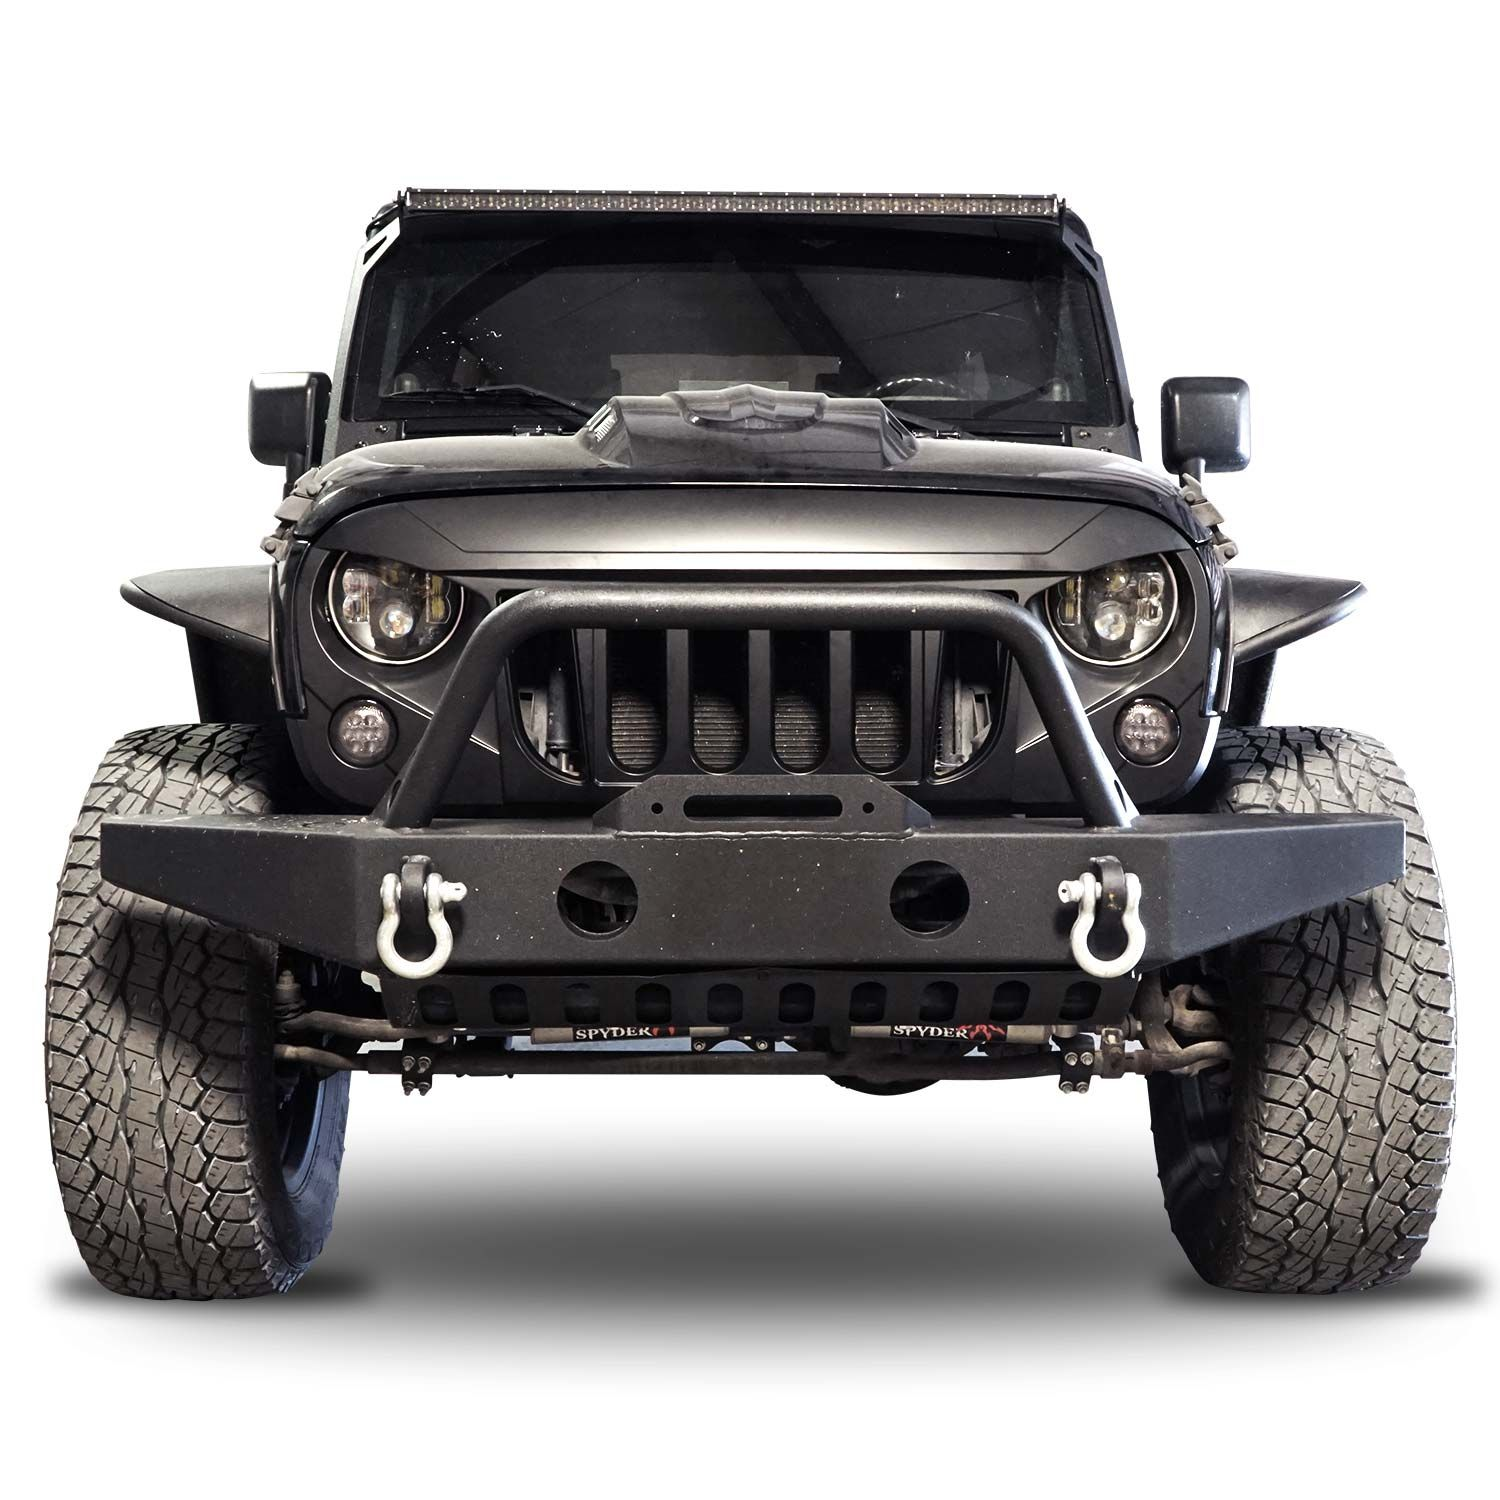 Best Jeep Wrangler Jk Upgrades Such As Hood Fender Bumper Light